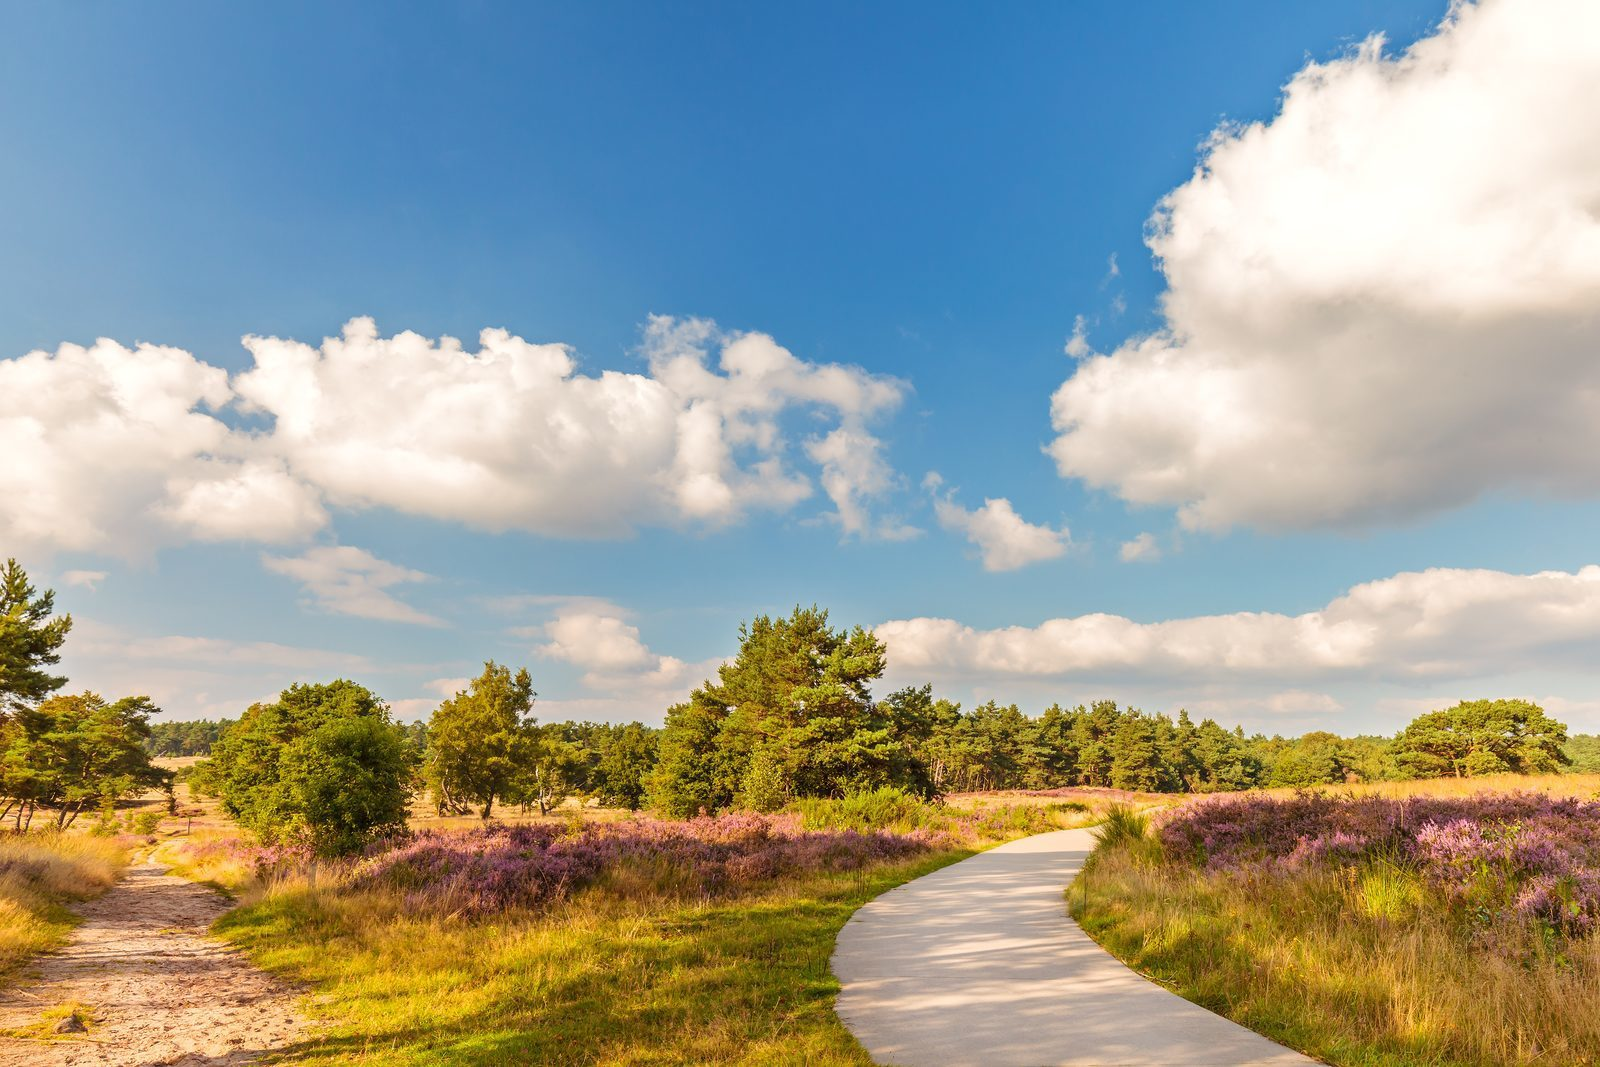 Veluwe - heath